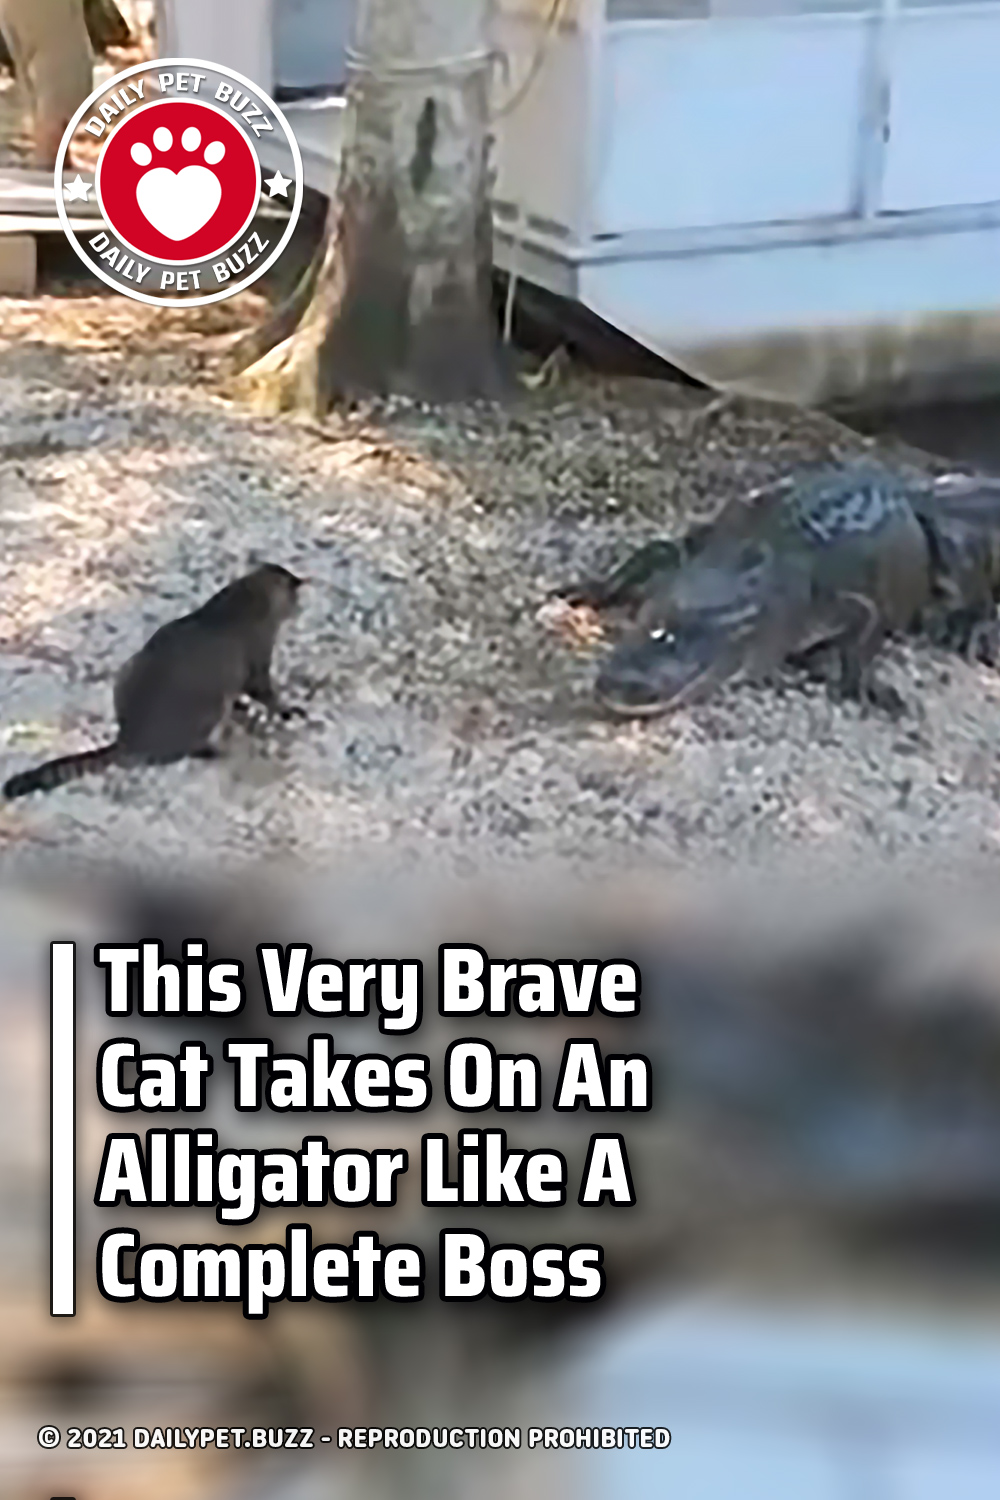 This Very Brave Cat Takes On An Alligator Like A Complete Boss